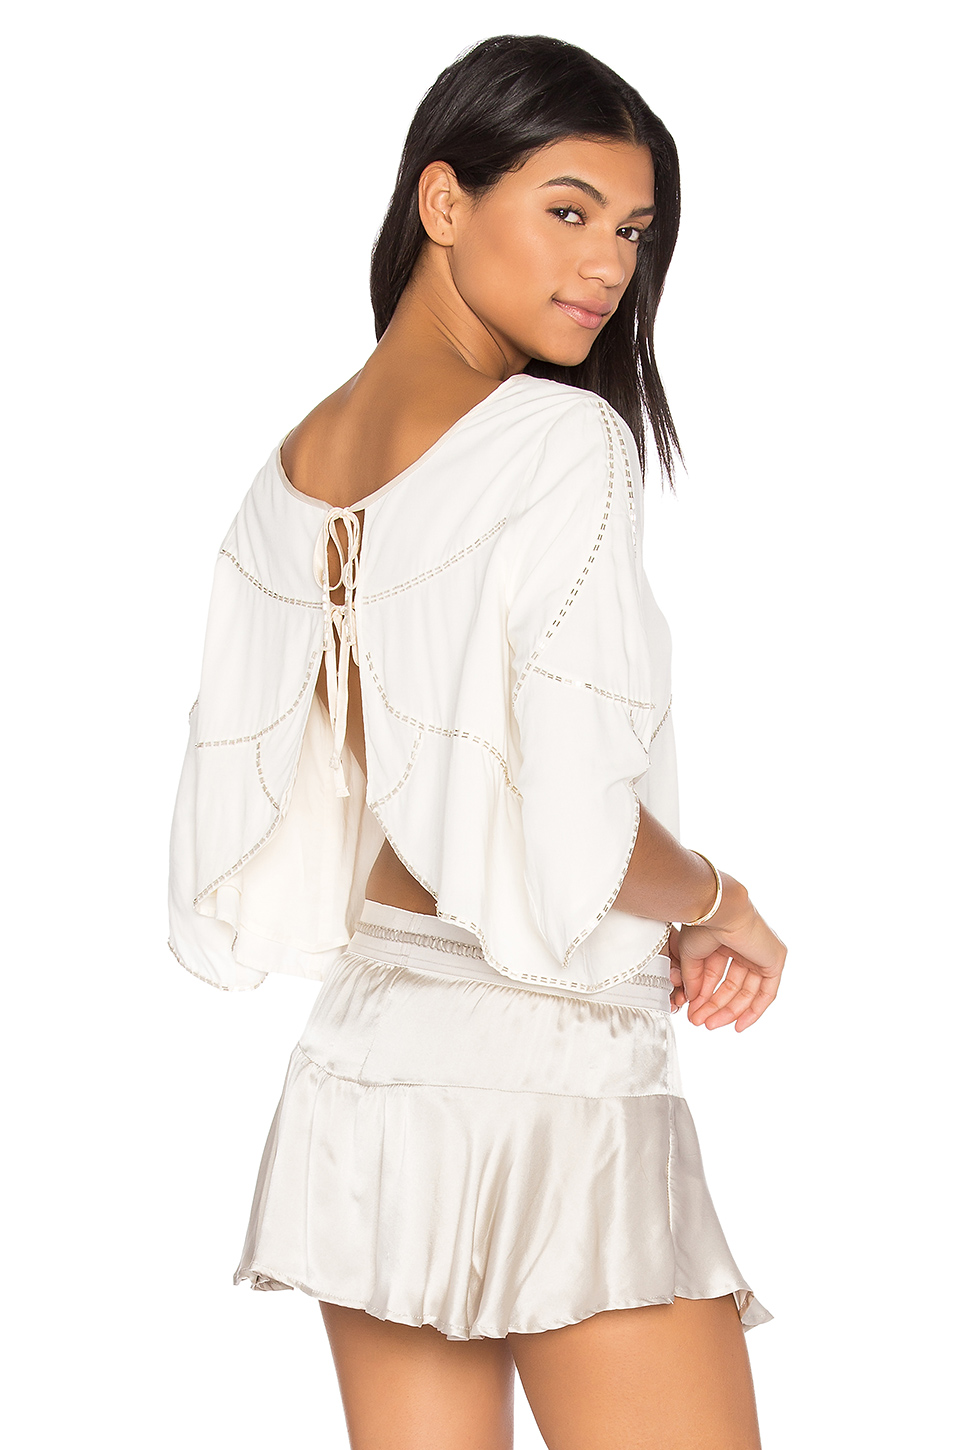 Flannel Australia Mirage Top In Ivory